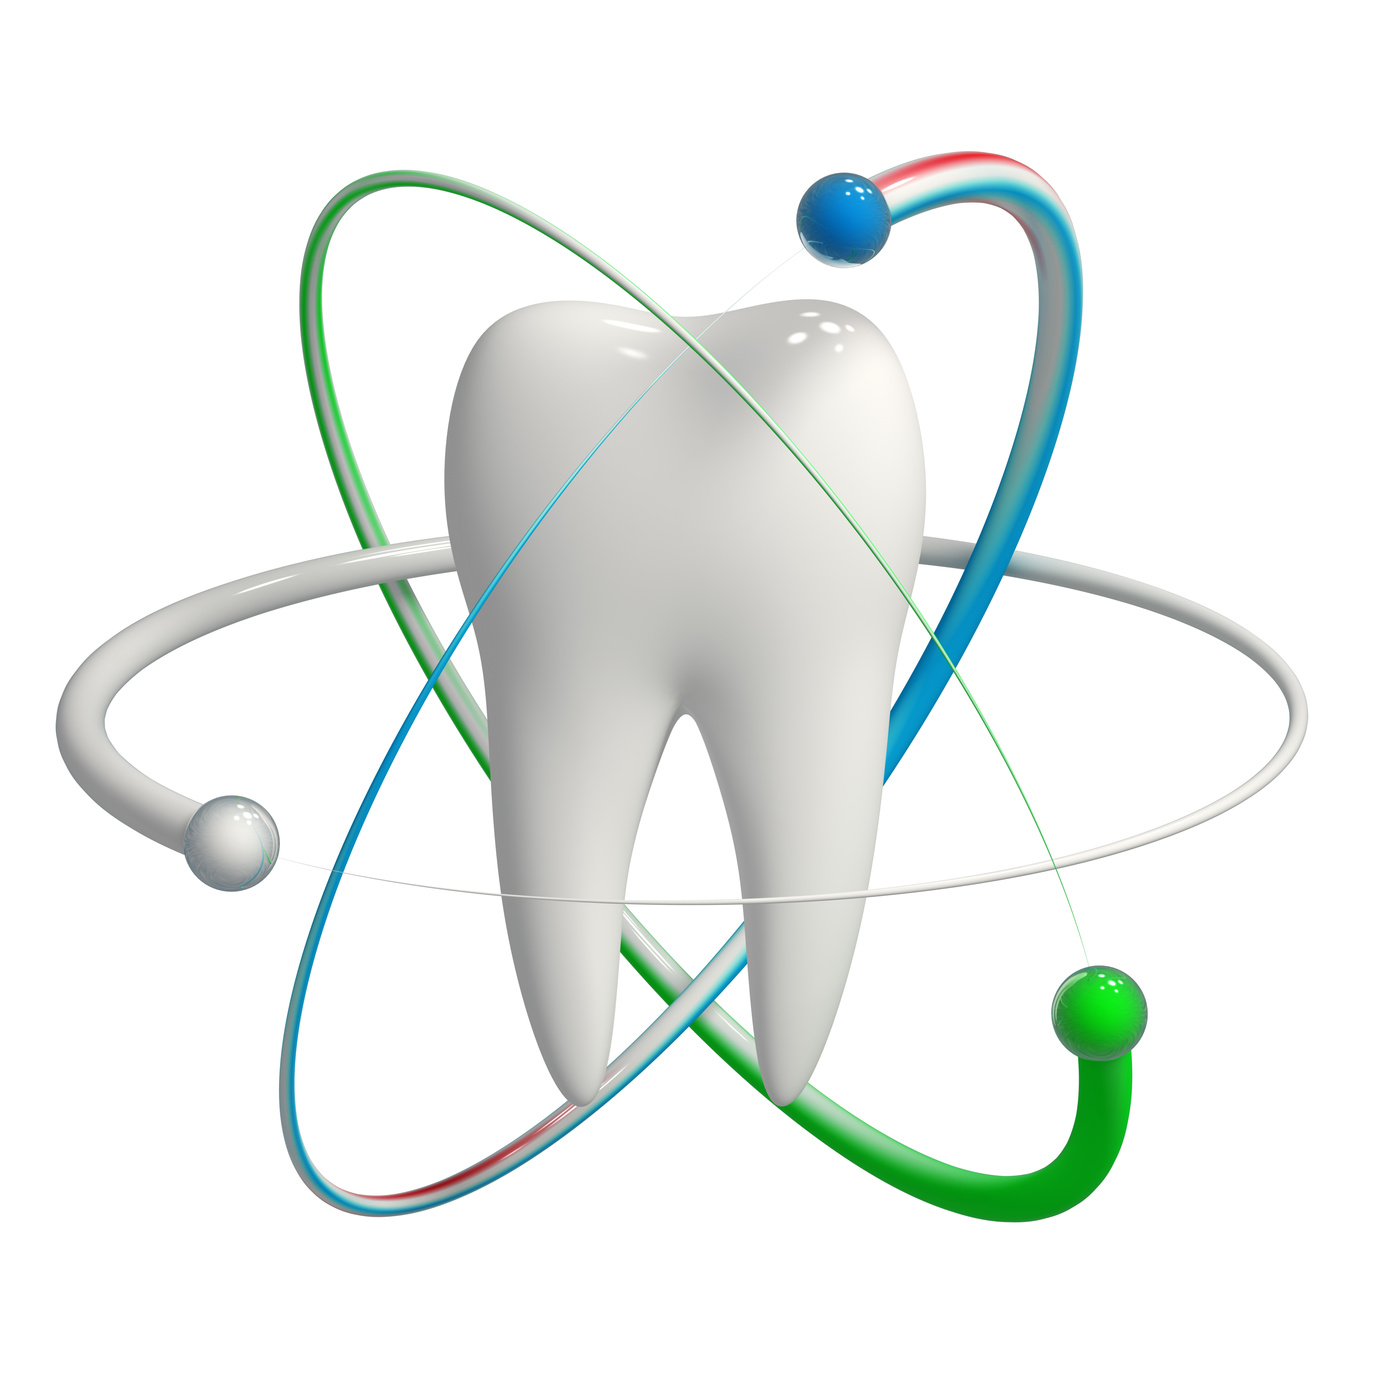 miso dental clinic technical background results Gotomeeting support is here to help download, install and test gotometing software, read popular topics, user guides, and find resources that will help you host a successful online meeting.